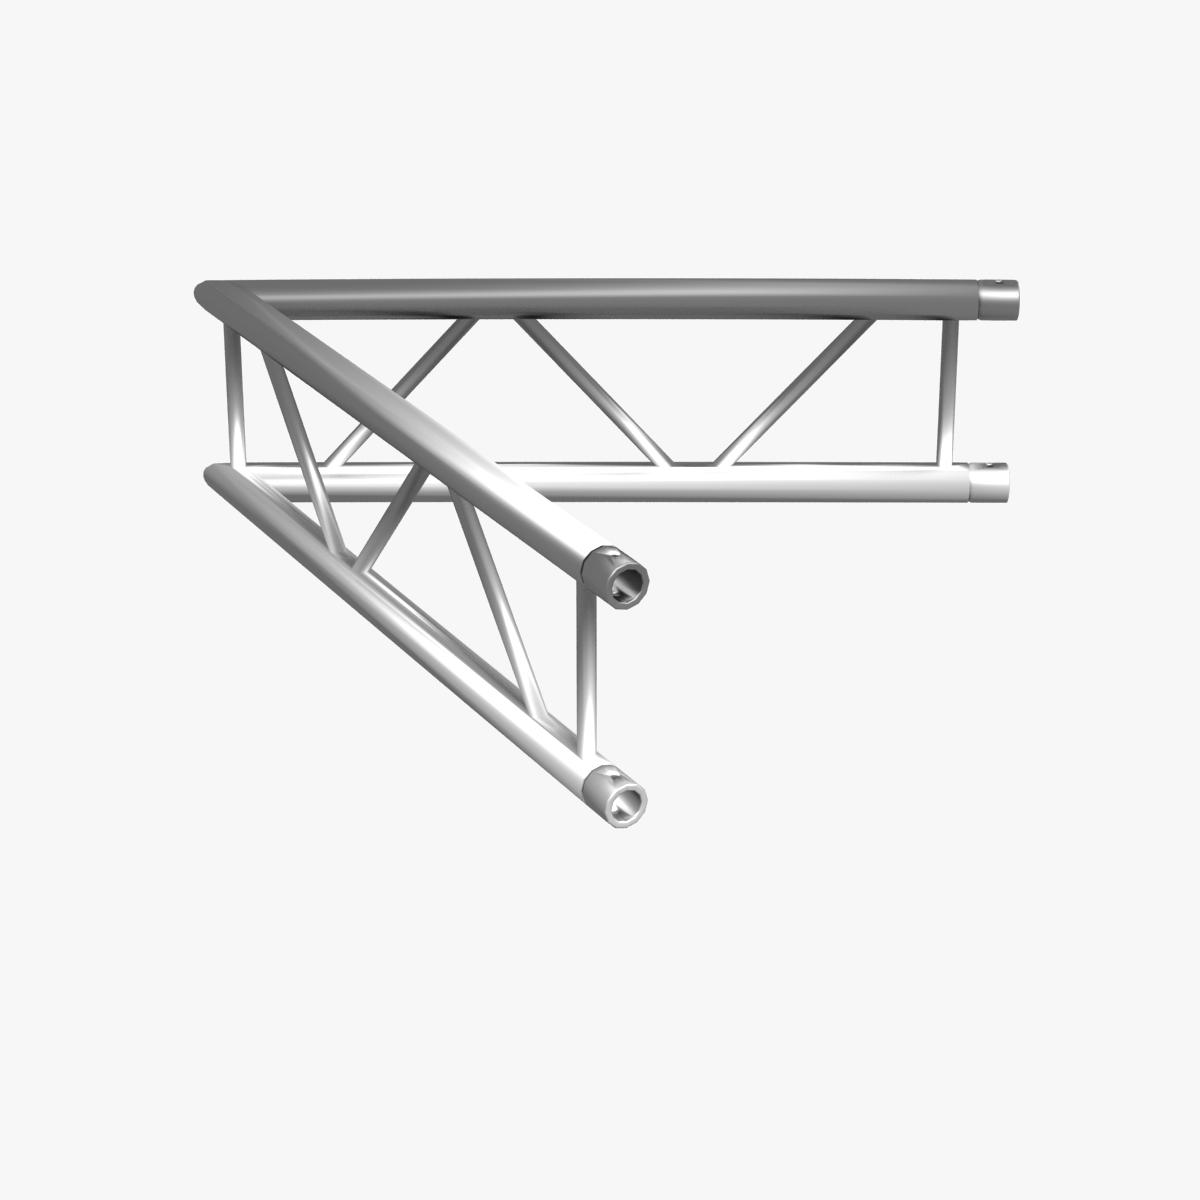 beam trusses (collection 24 modular pieces) 3d model 3ds max dxf fbx bmp blend c4d dae other obj 268751